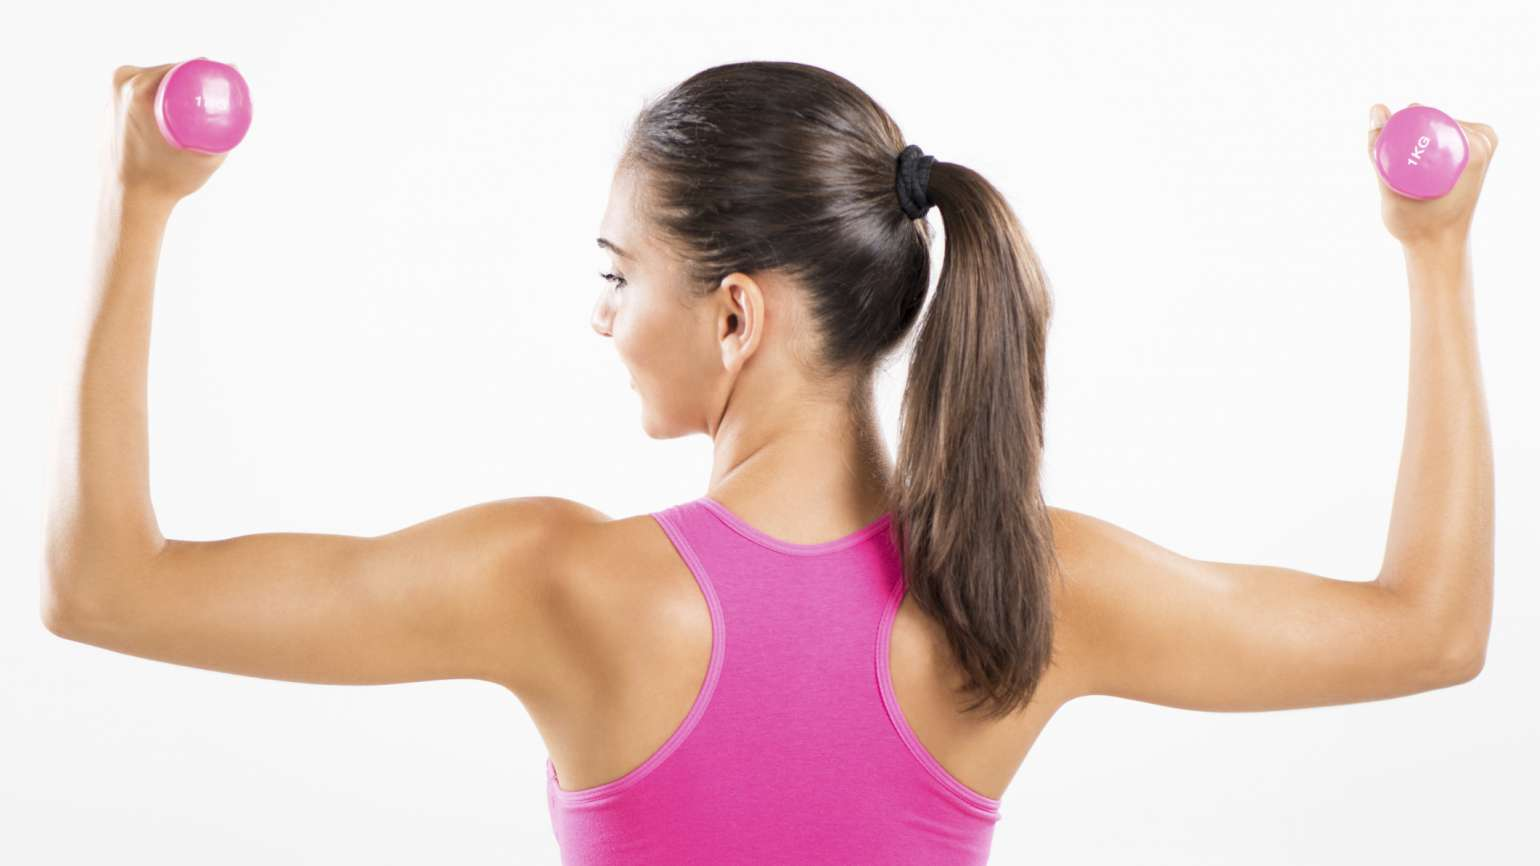 woman wearing pink workout clothes and flexing her arms with pink weights